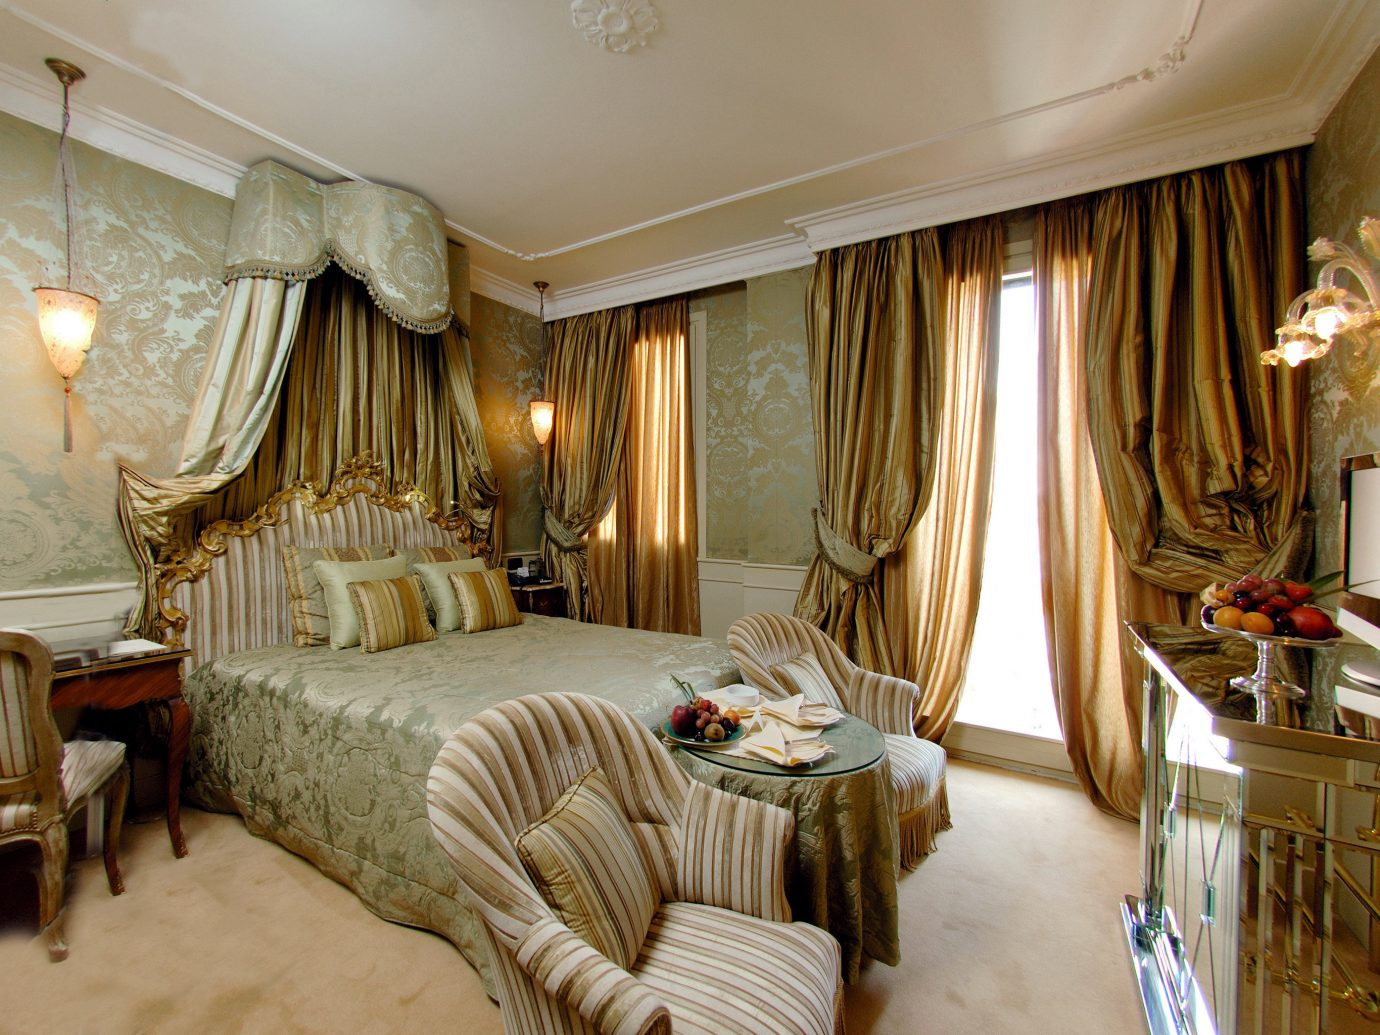 Bedroom City Classic Elegant Historic Hotels Italy Luxury Travel Romance Romantic Venice indoor wall room floor property bed Living estate decorated ceiling Suite interior design home living room curtain hotel real estate cottage furniture mansion area several